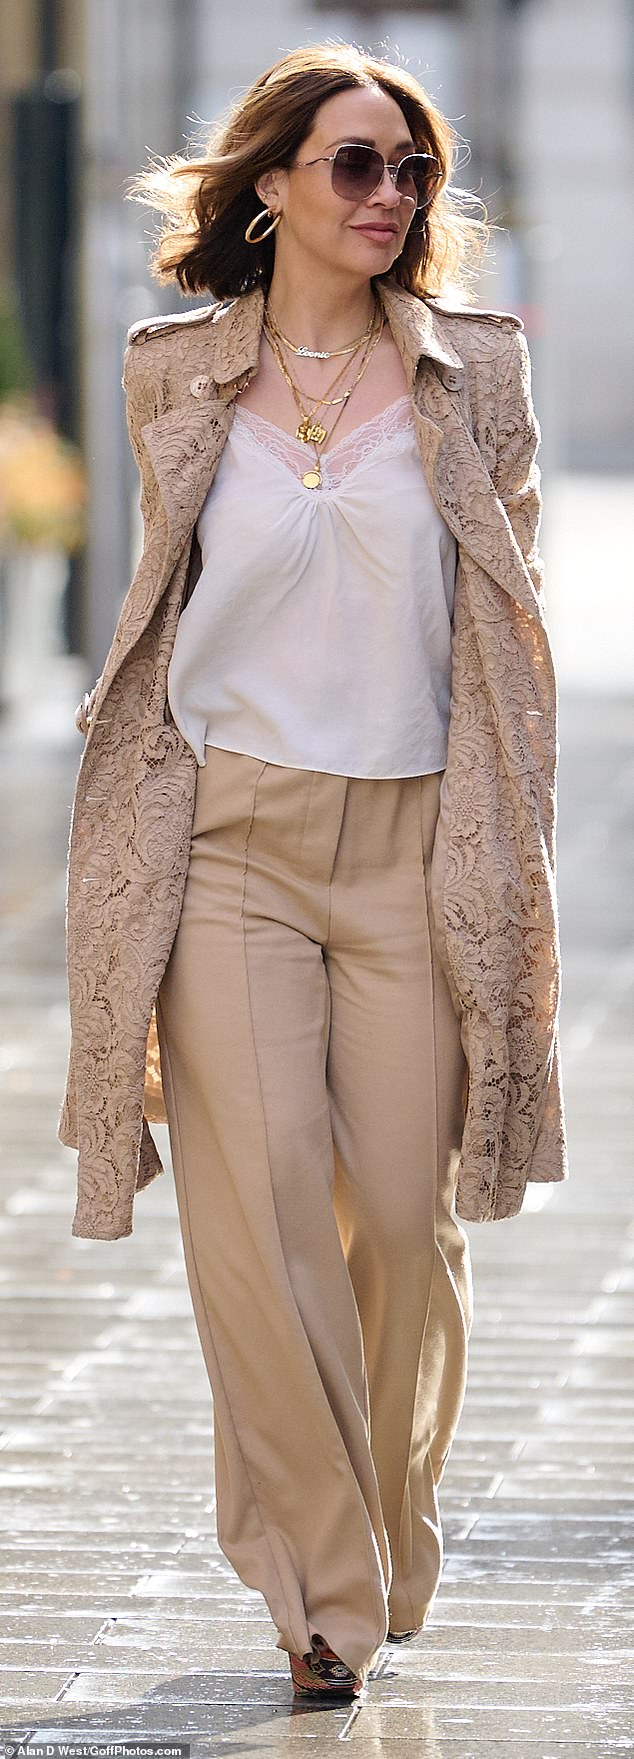 Strutting her stuff:She appeared in great spirits as she teamed her nude outerwear with some sophisticated wide-legged beige trousers